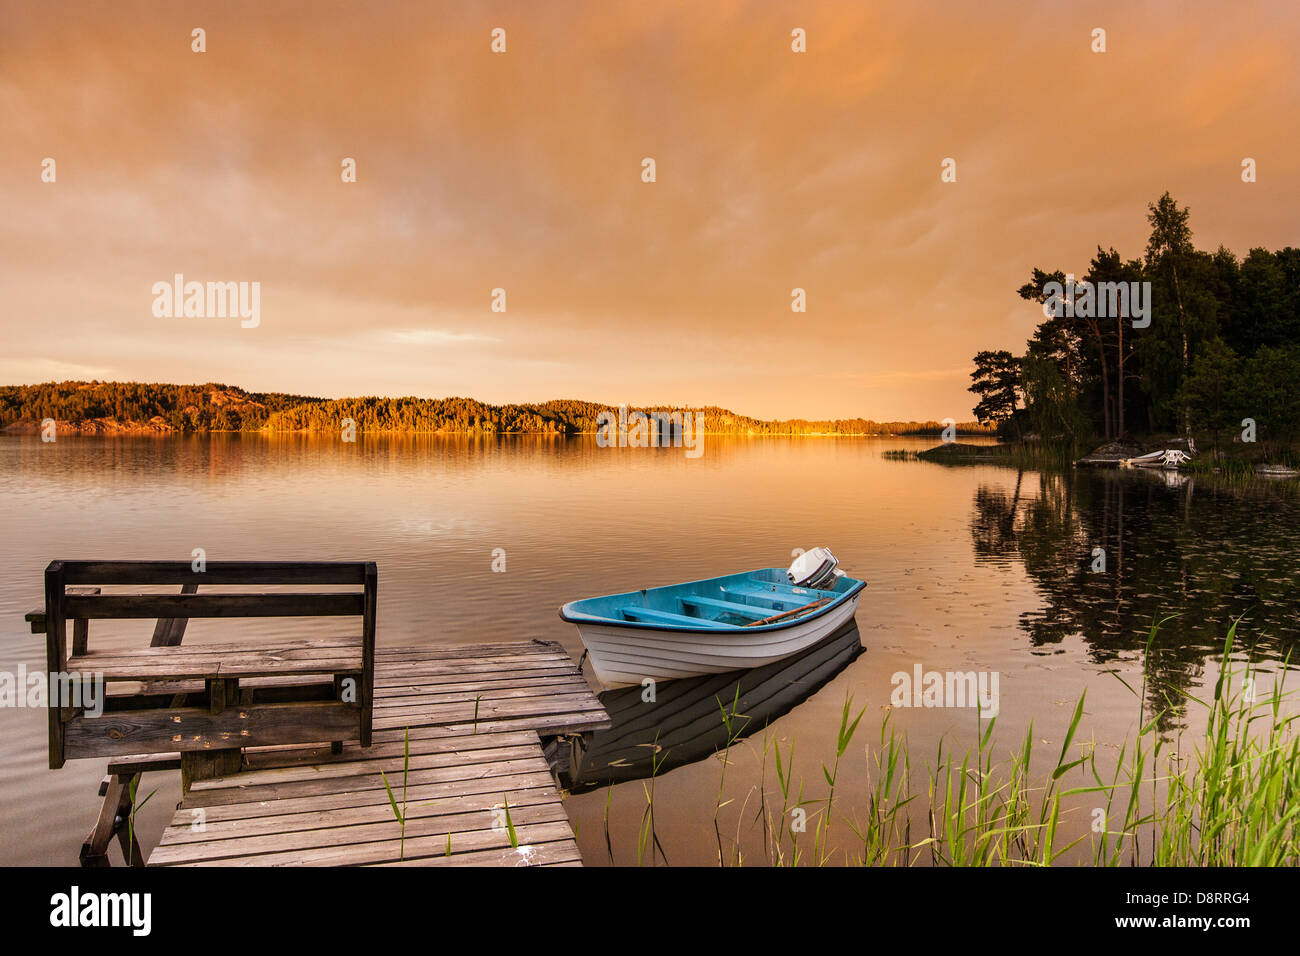 Small boat moored at a jetty on a lake in Sweden, evening - Stock Image